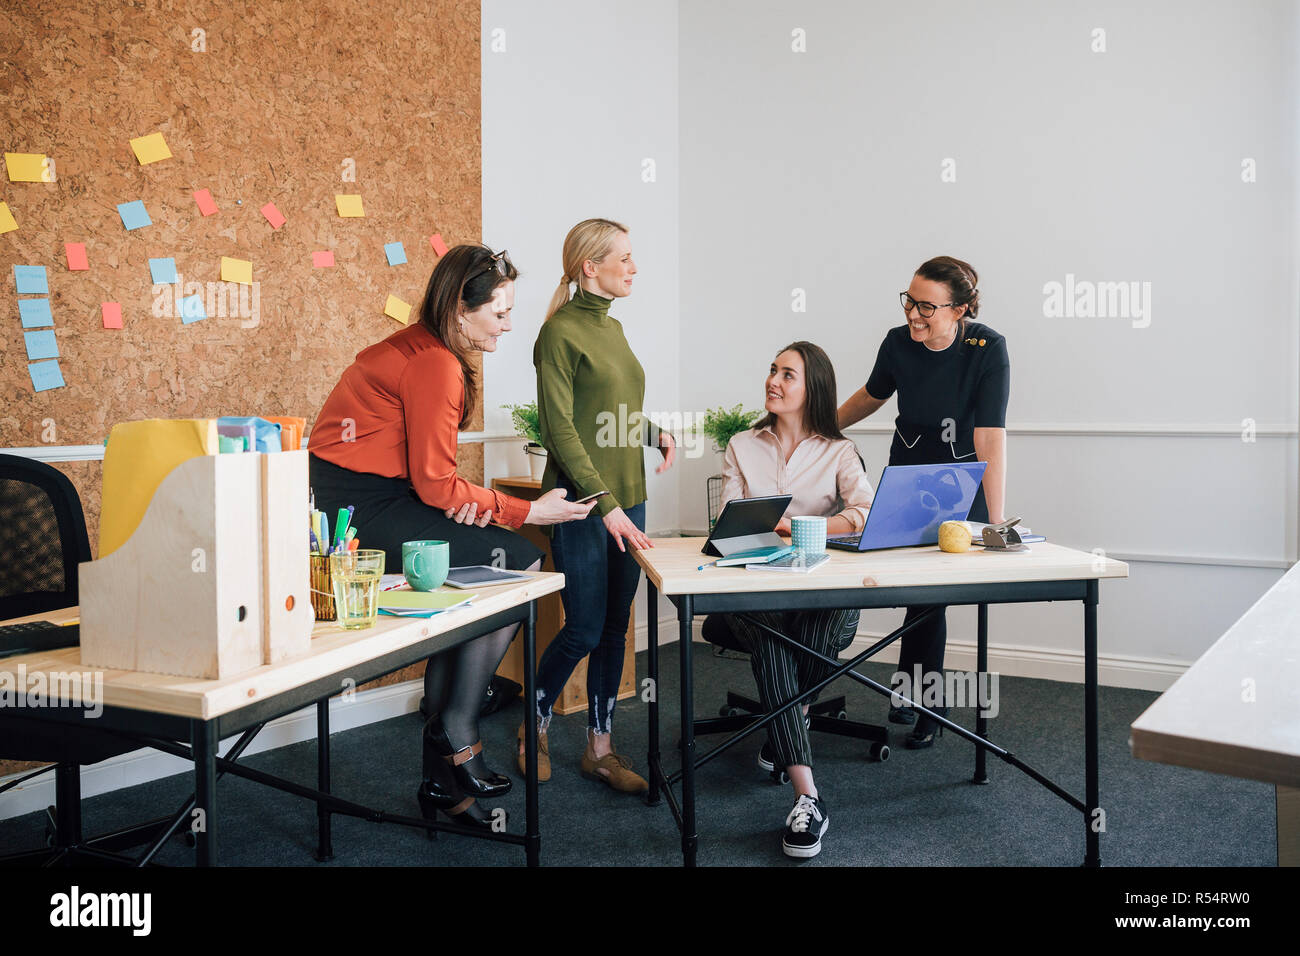 Female Workers In An Office - Stock Image